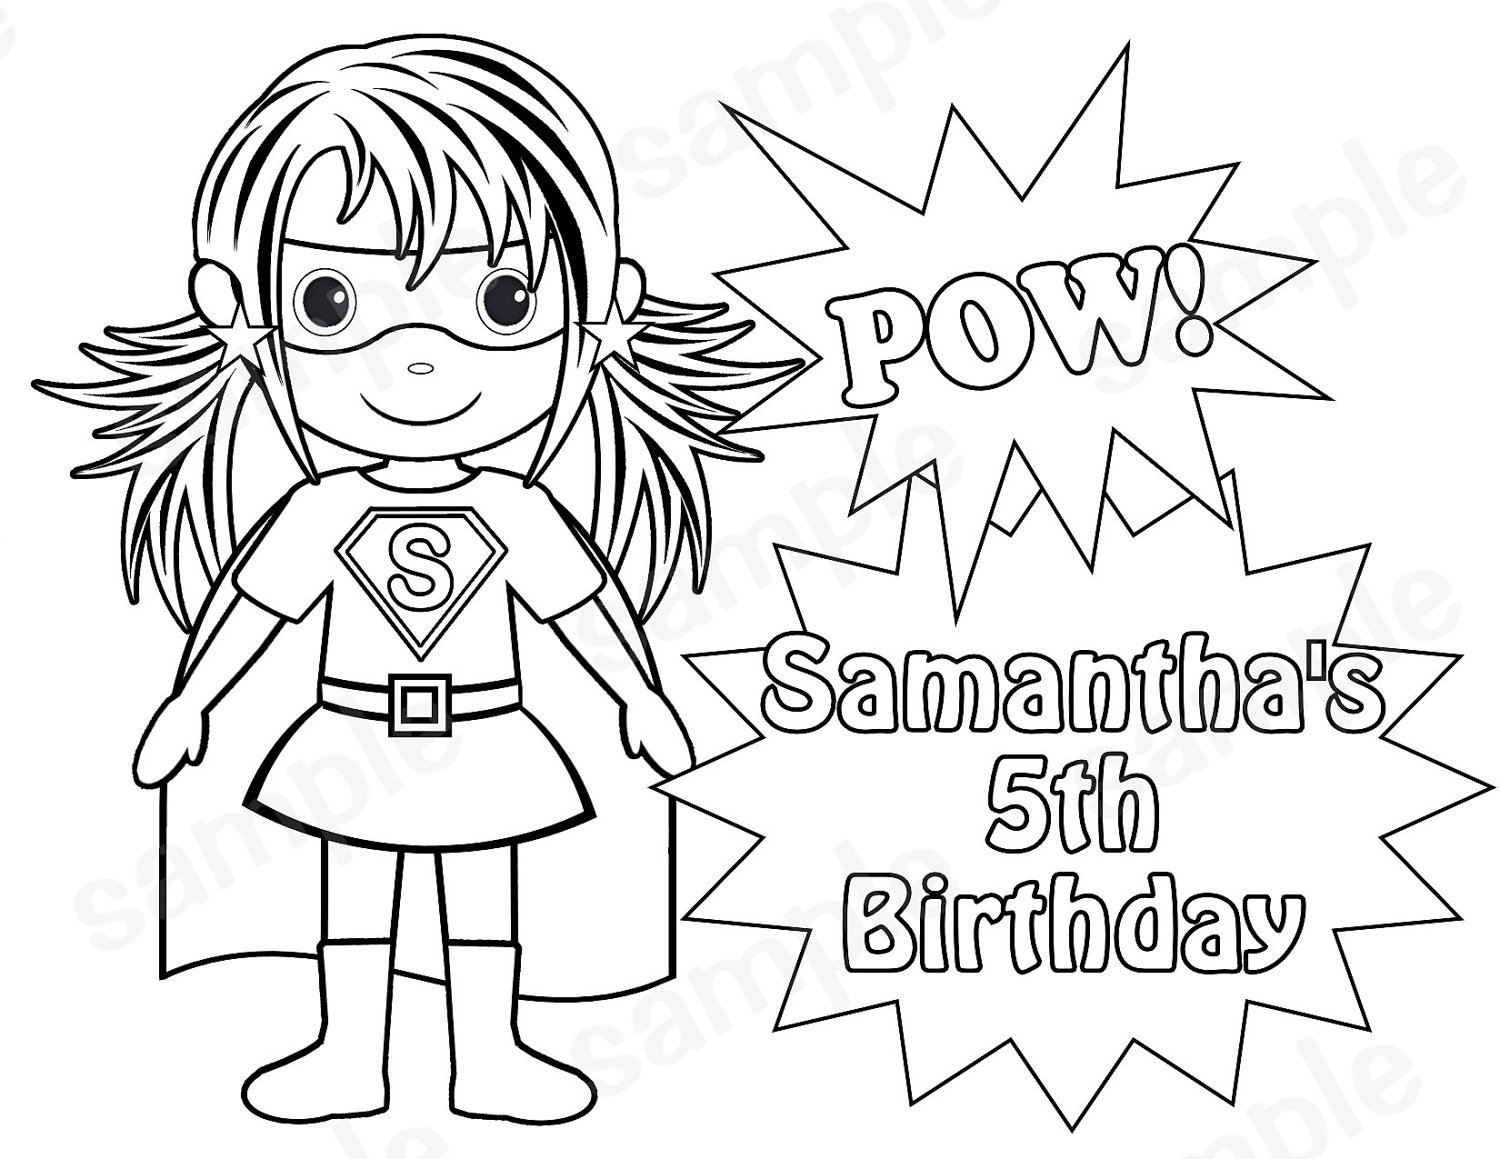 Best Superhero Coloring Pages Printable - Superhero ...